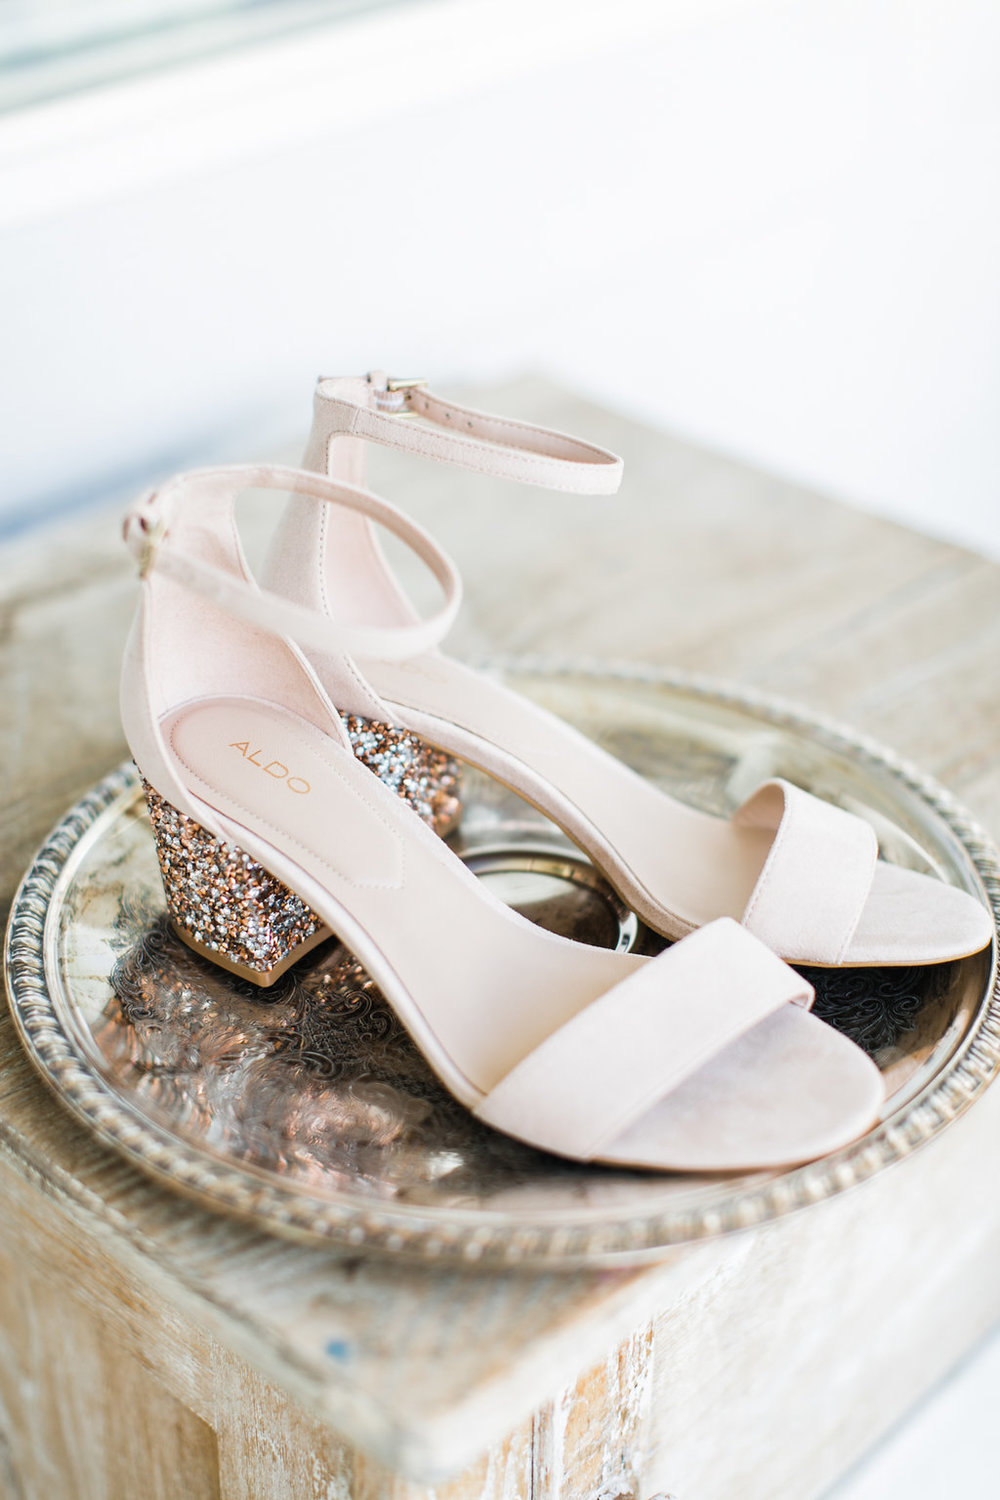 How amazing are these heels and it's touch of glitter?